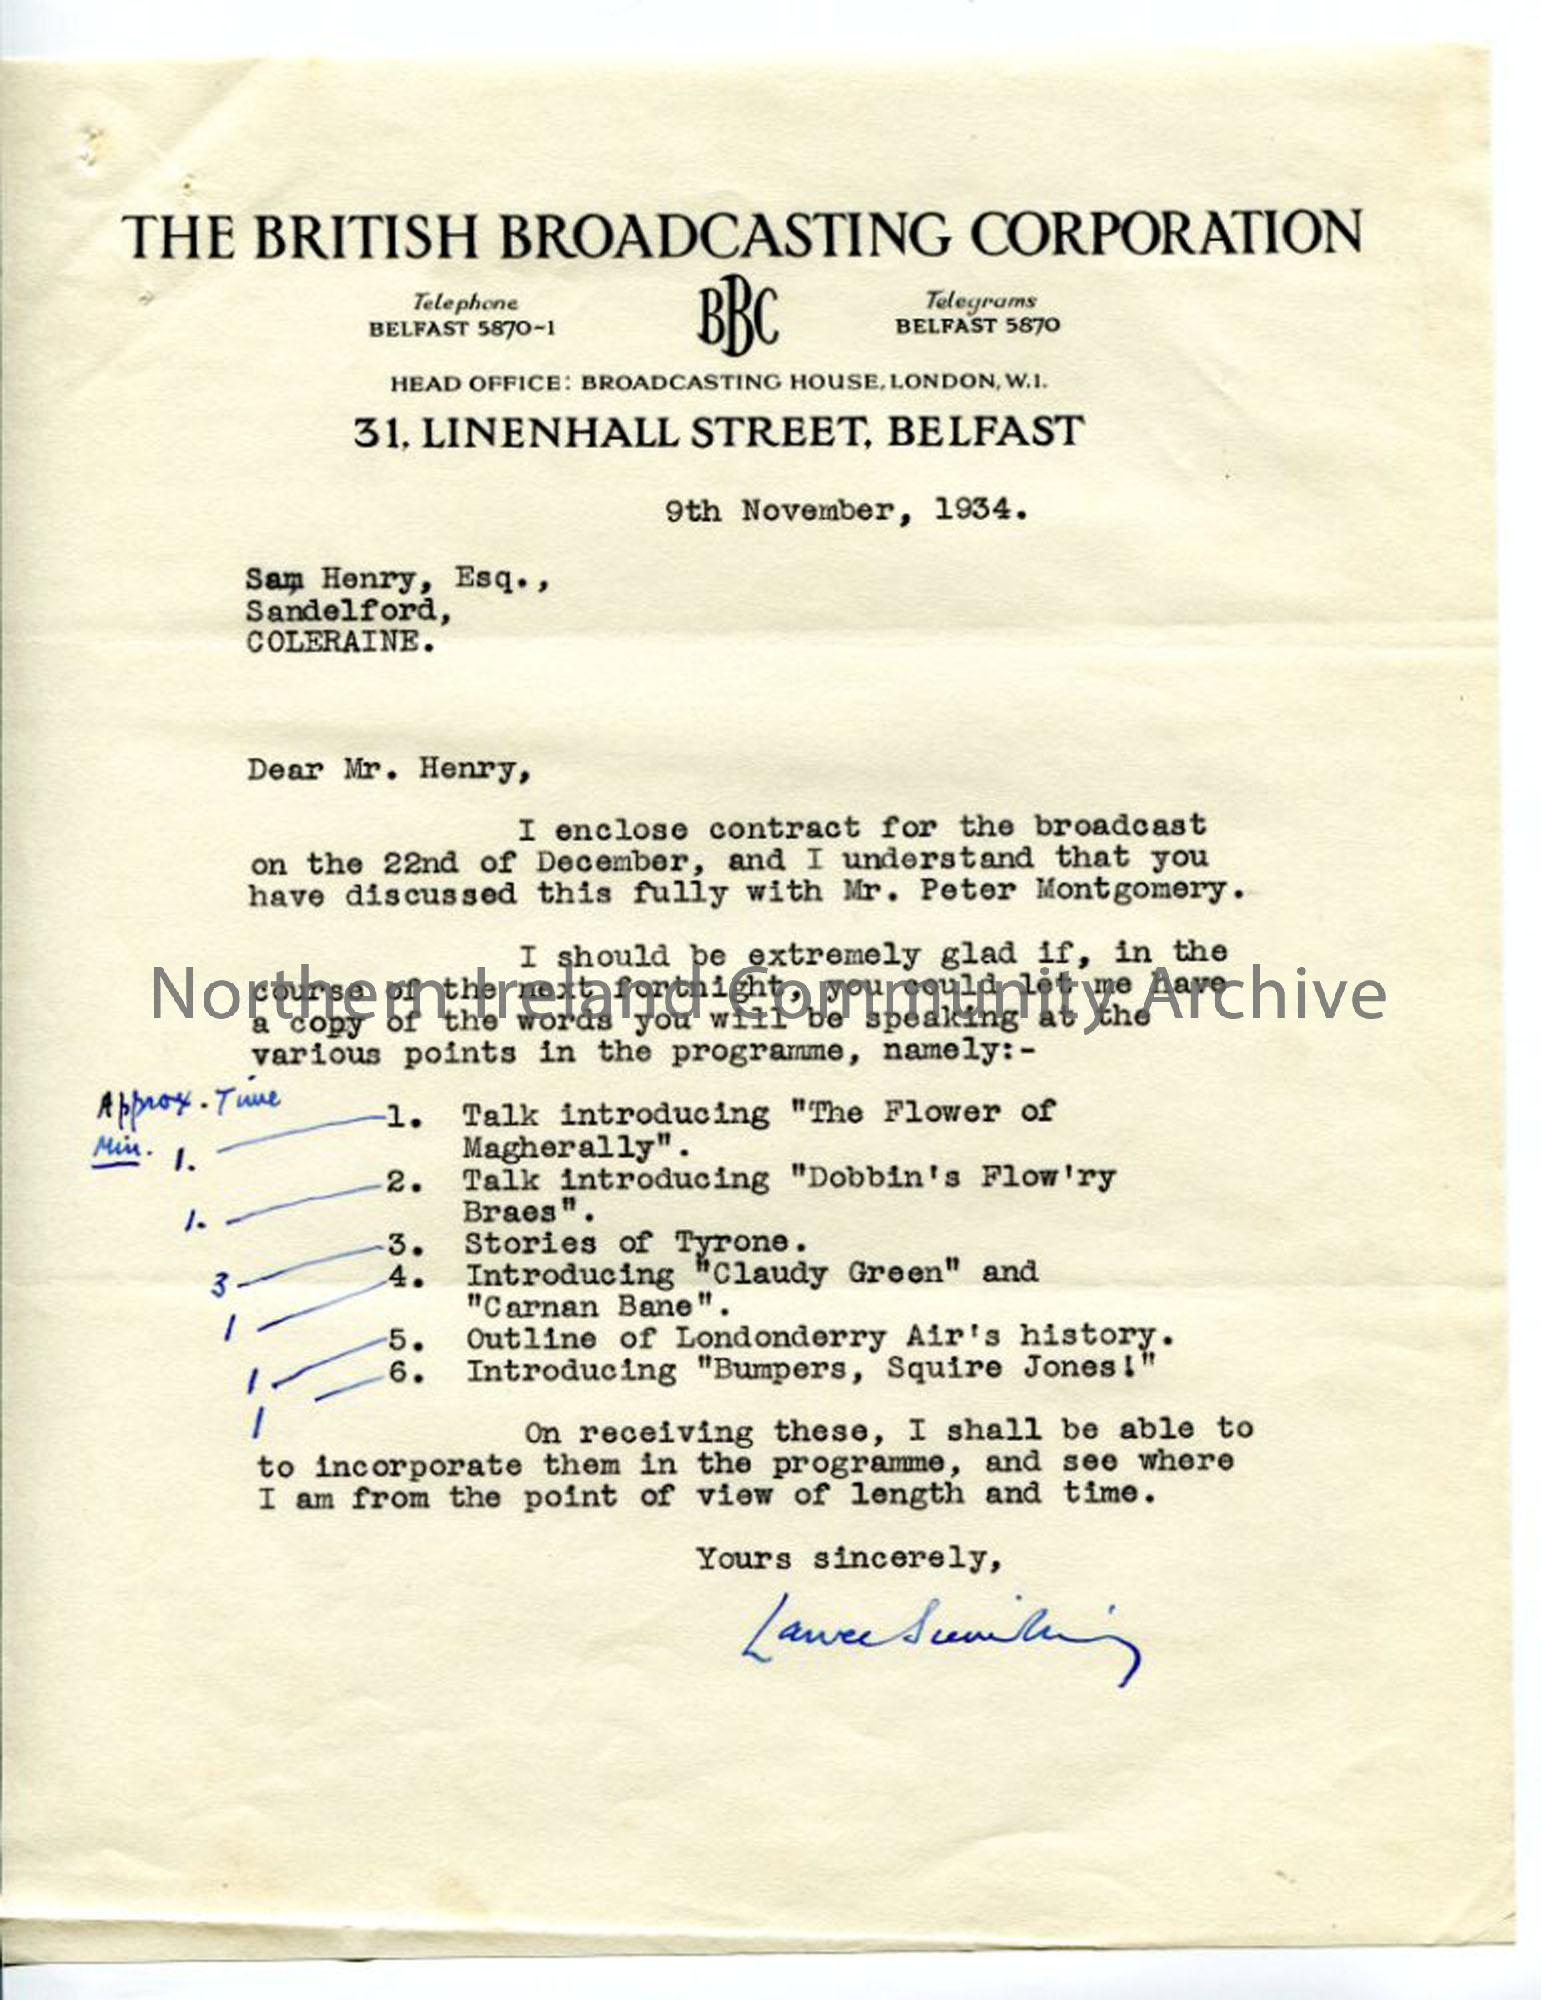 Letter from Lance Sieveking of the BBC, dated 9.11.1934